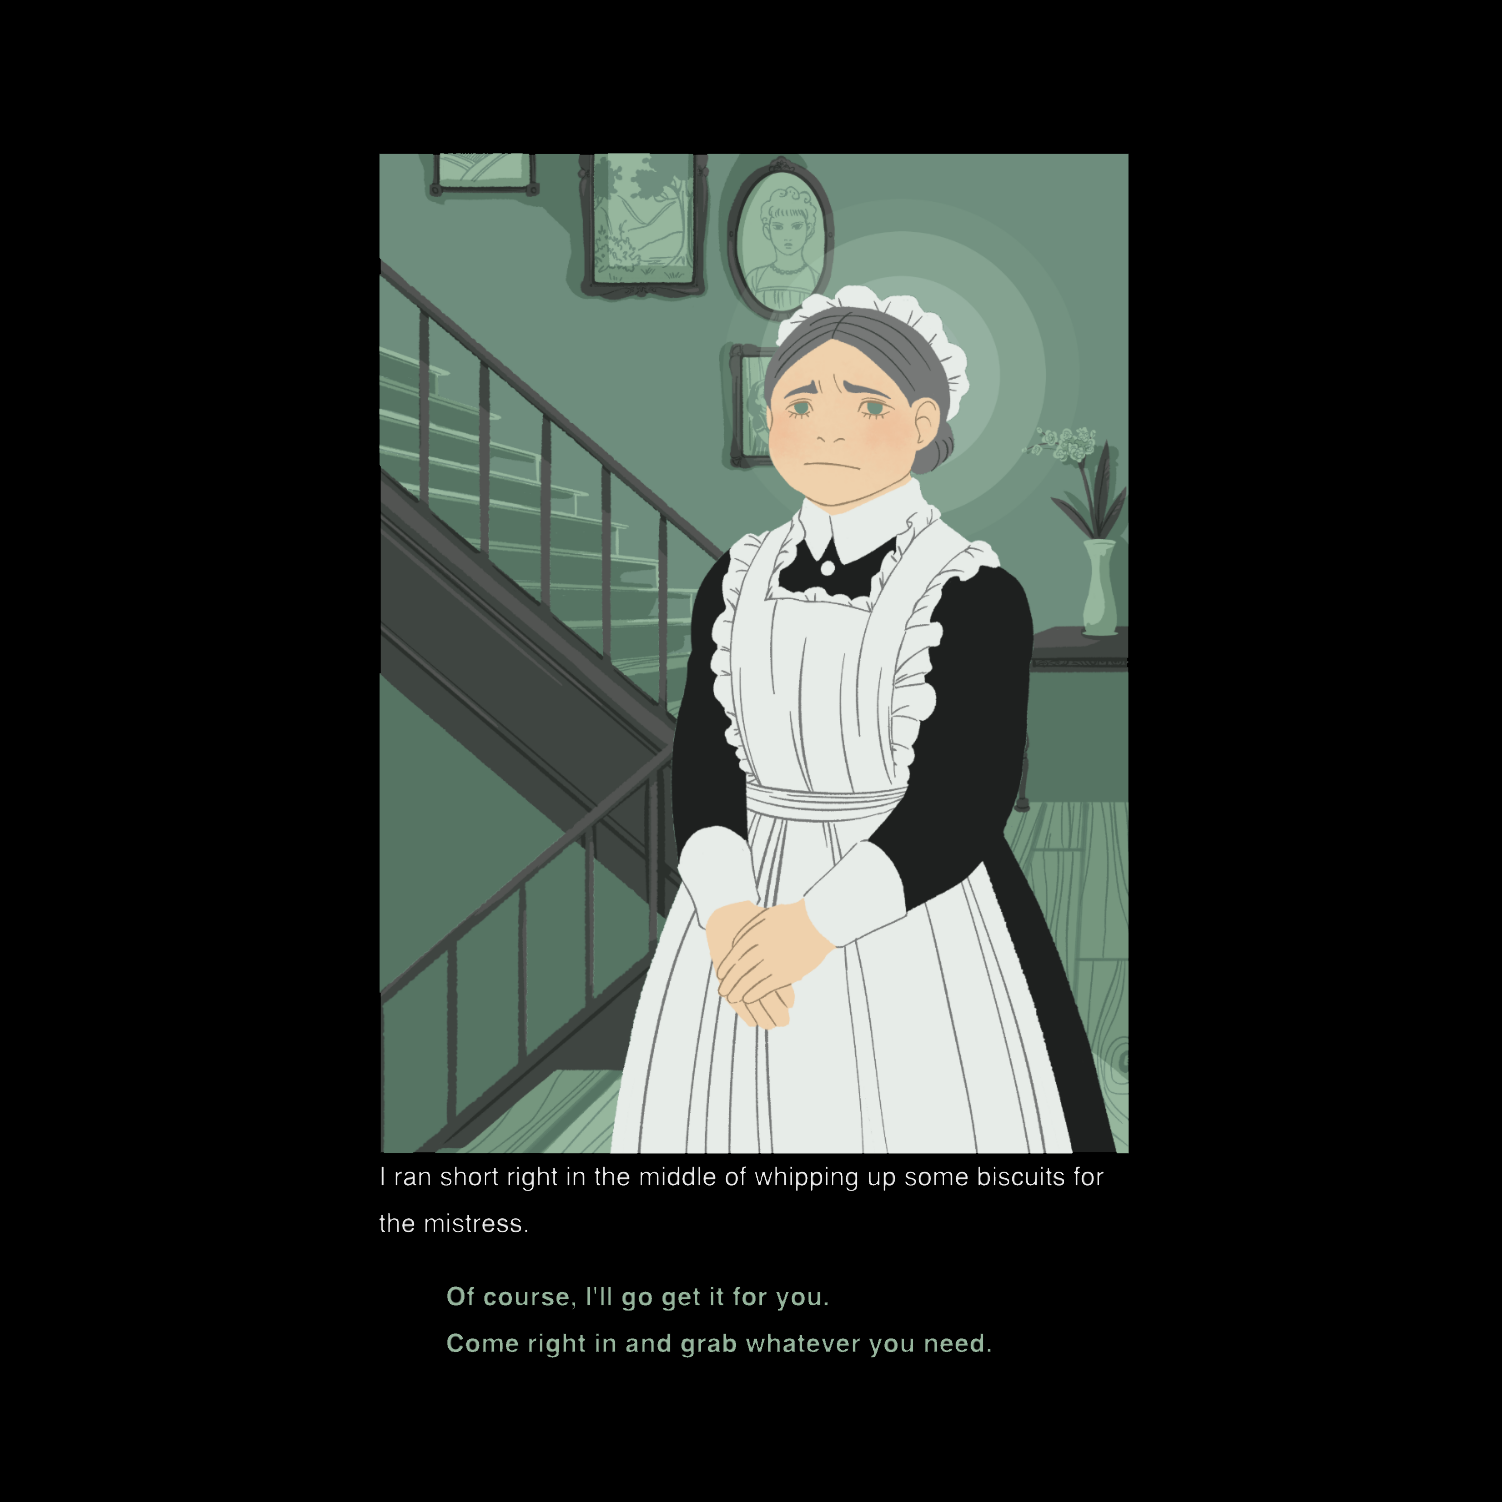 A victorian maid stands in a hallway, with text prompting to help her with a favor or send her away